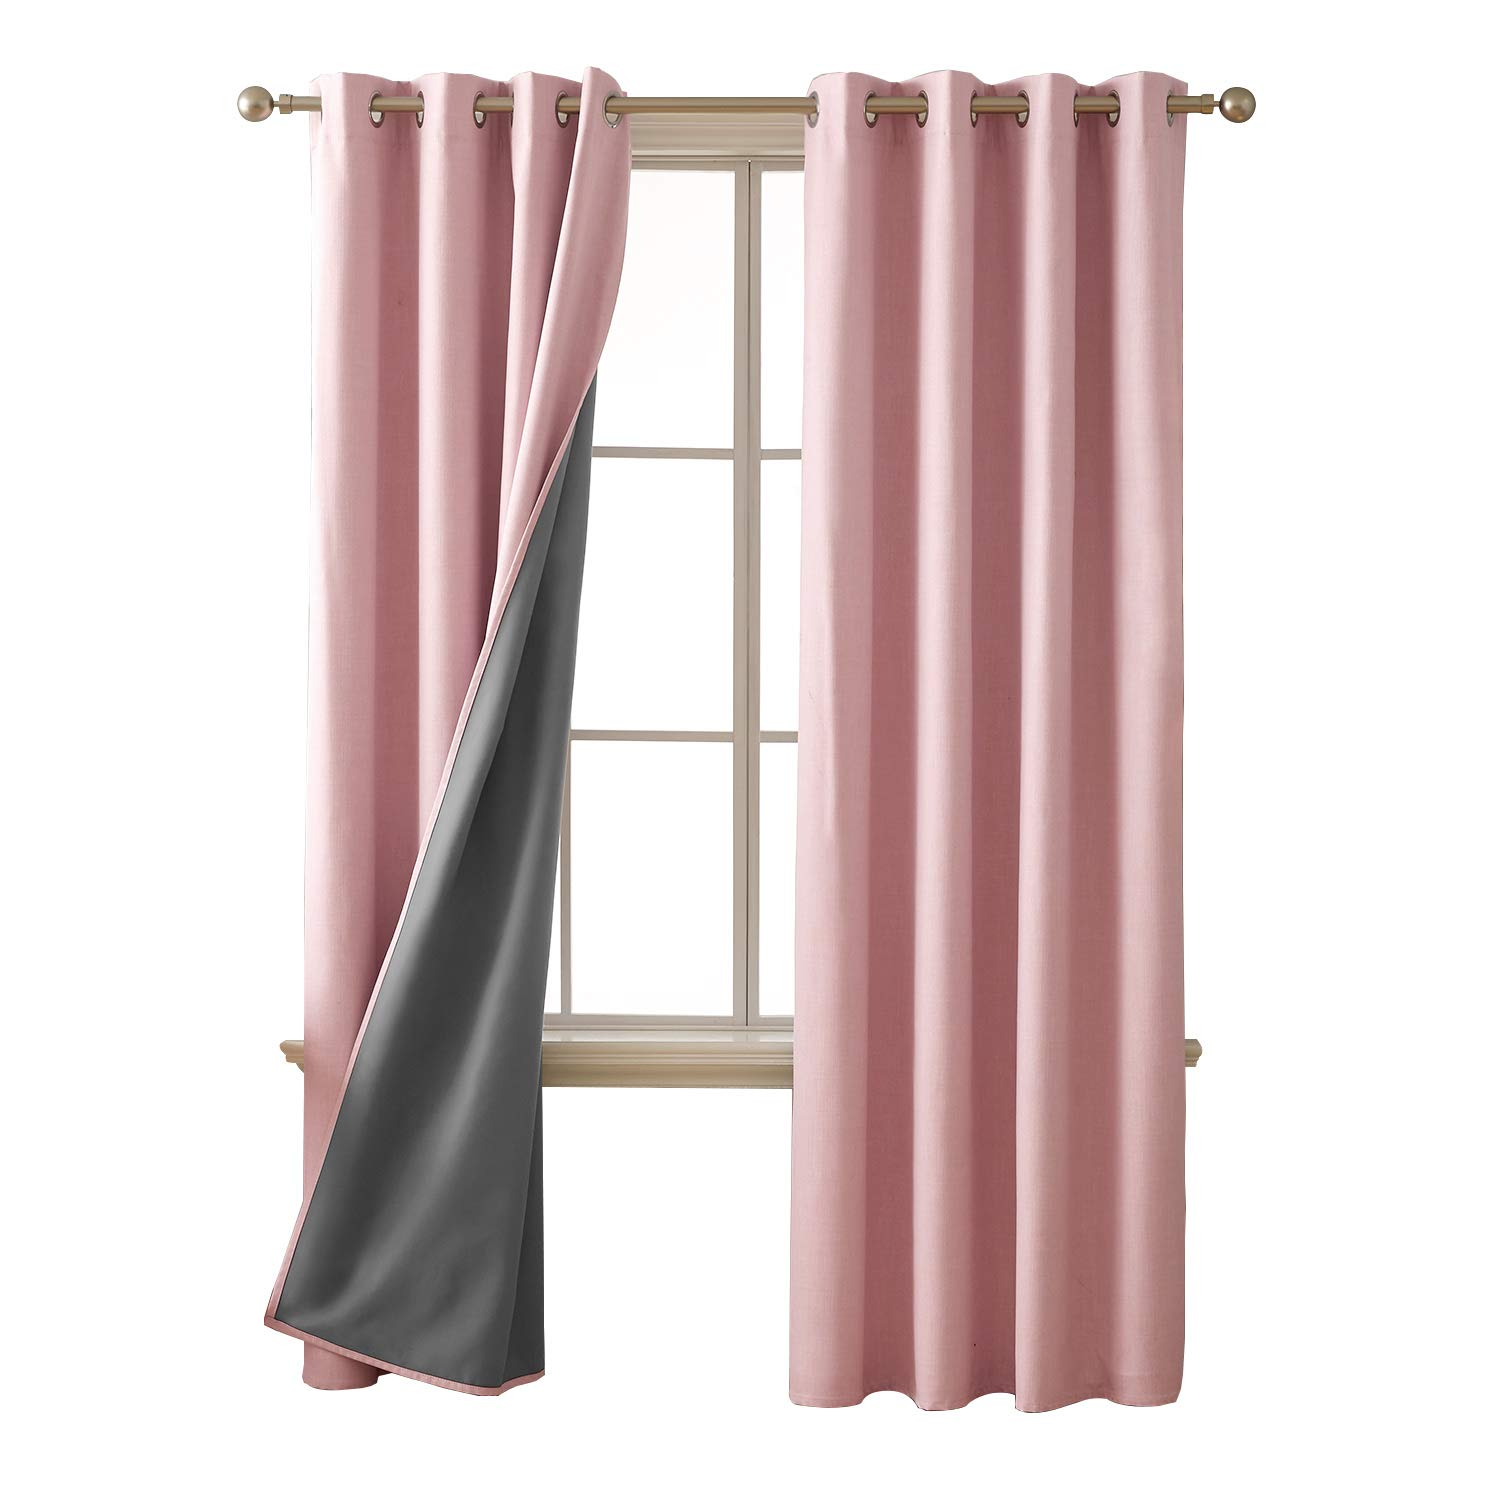 Deconovo Total Blackout Curtains with 3 Pass Energy Efficient Thermal Insulated Coating Faux Linen Room Darkening Pink Curtains for Dining Room 52 x 95 Inch Length Set of 2 Curtain Panels Pink